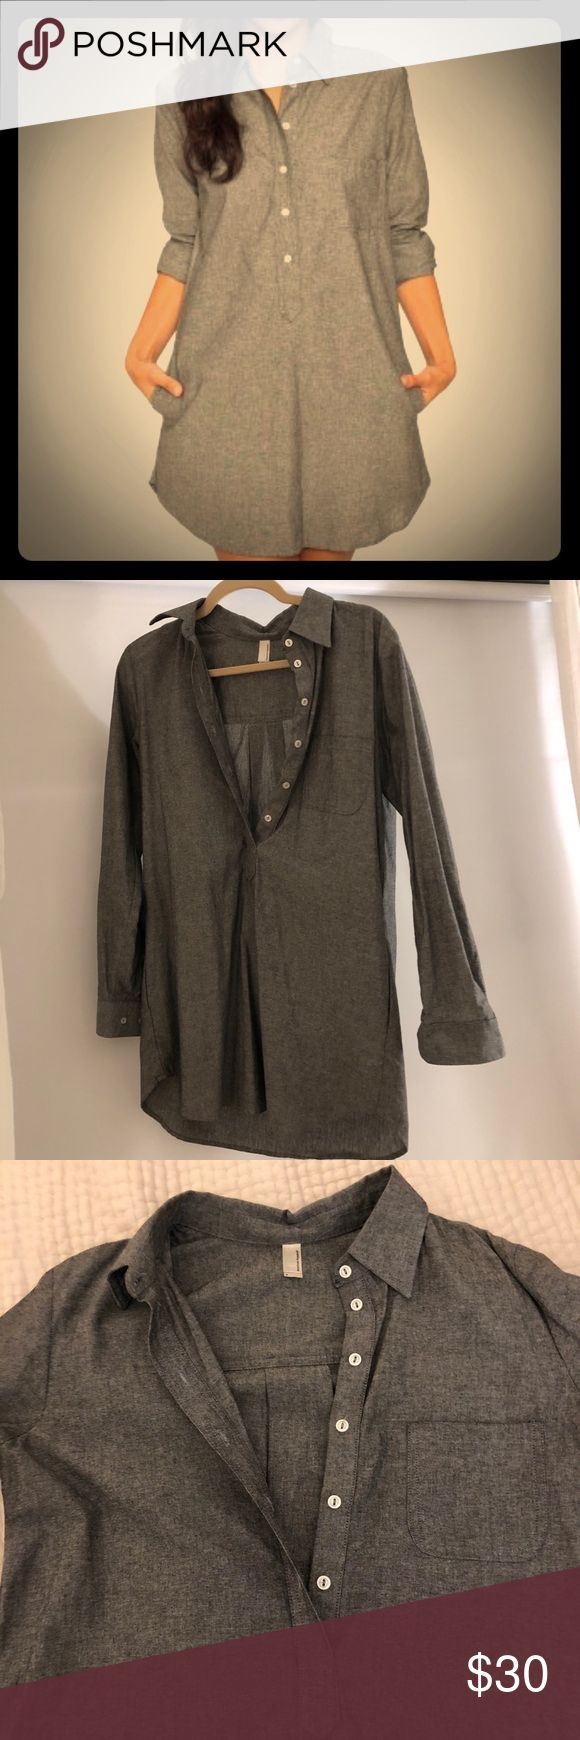 American Apparel gray chambray shirt dress/tunic American Apparel gray chambray shirt dress. Size small. Pairs great with leggings and boots! Accepting all offers 💕 American Apparel Dresses Long Sleeve